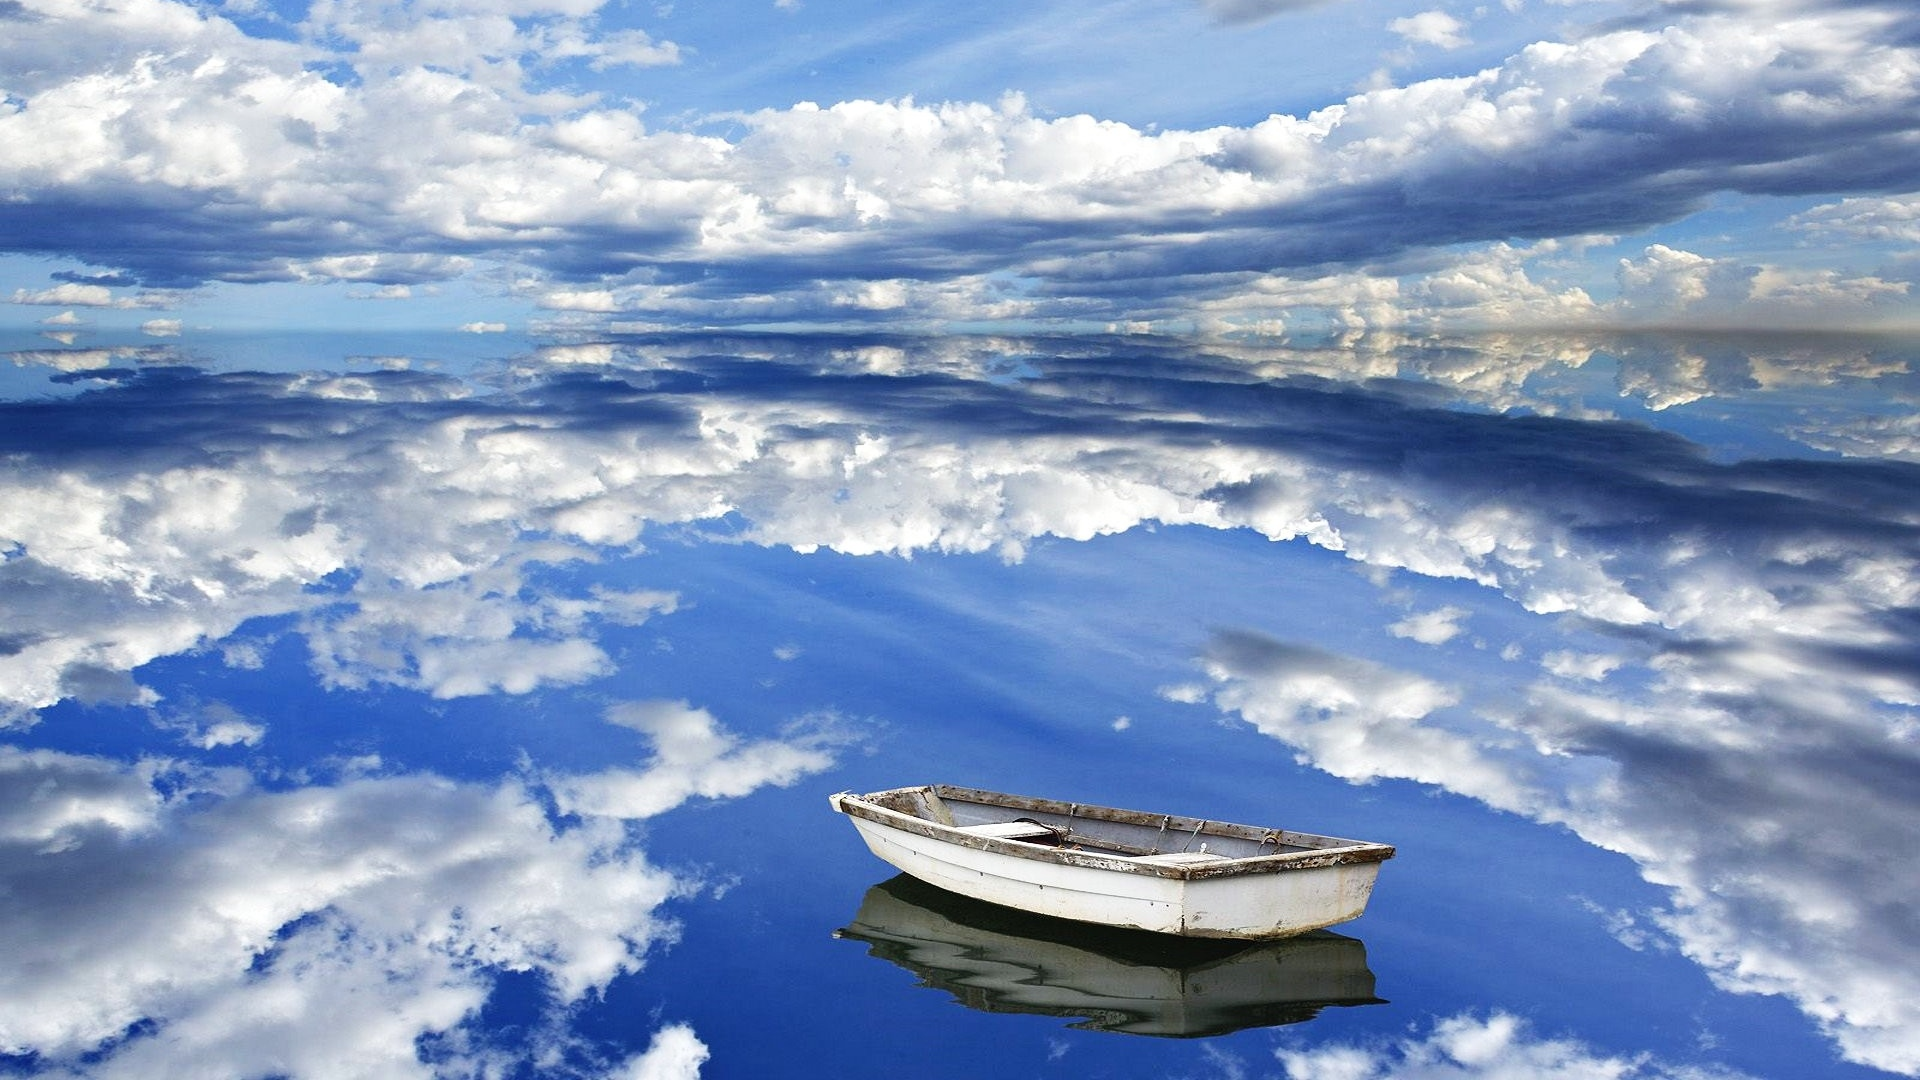 1920x1080-sky-clouds-reflection-boat-wallpaper-wp380932